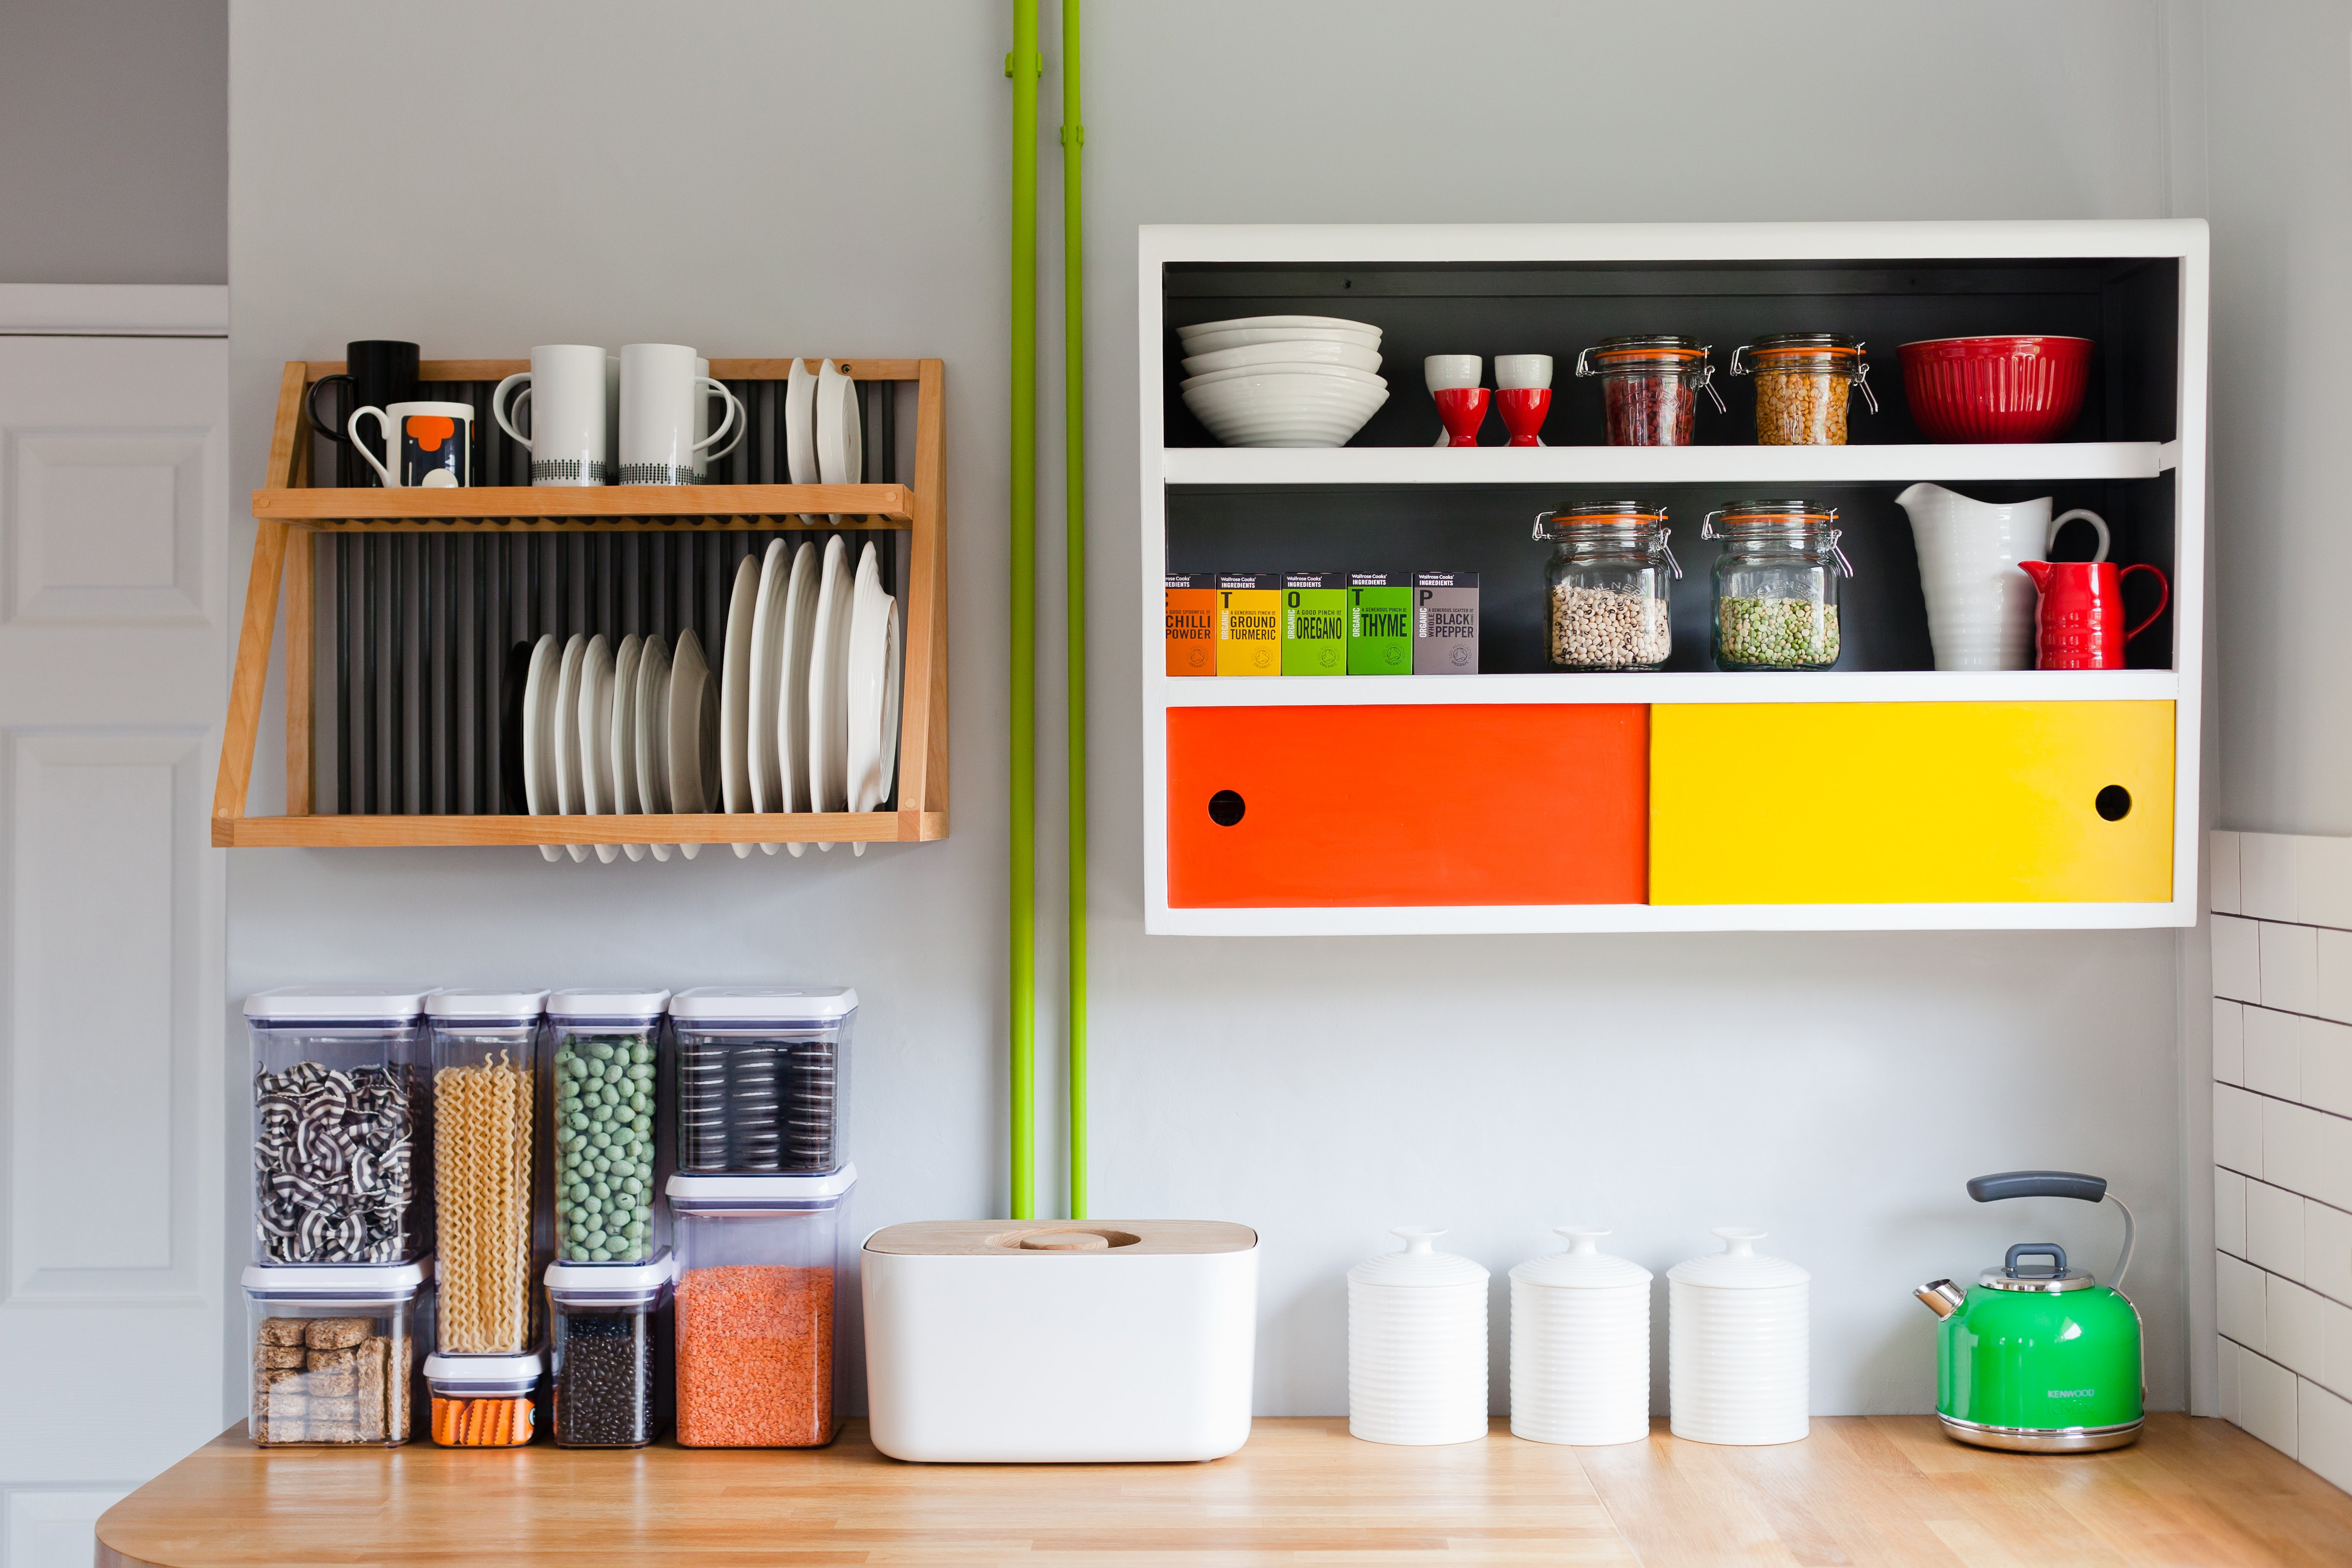 Here are some great ways to really give new life to your kitchen! Photo by Megan Taylor.